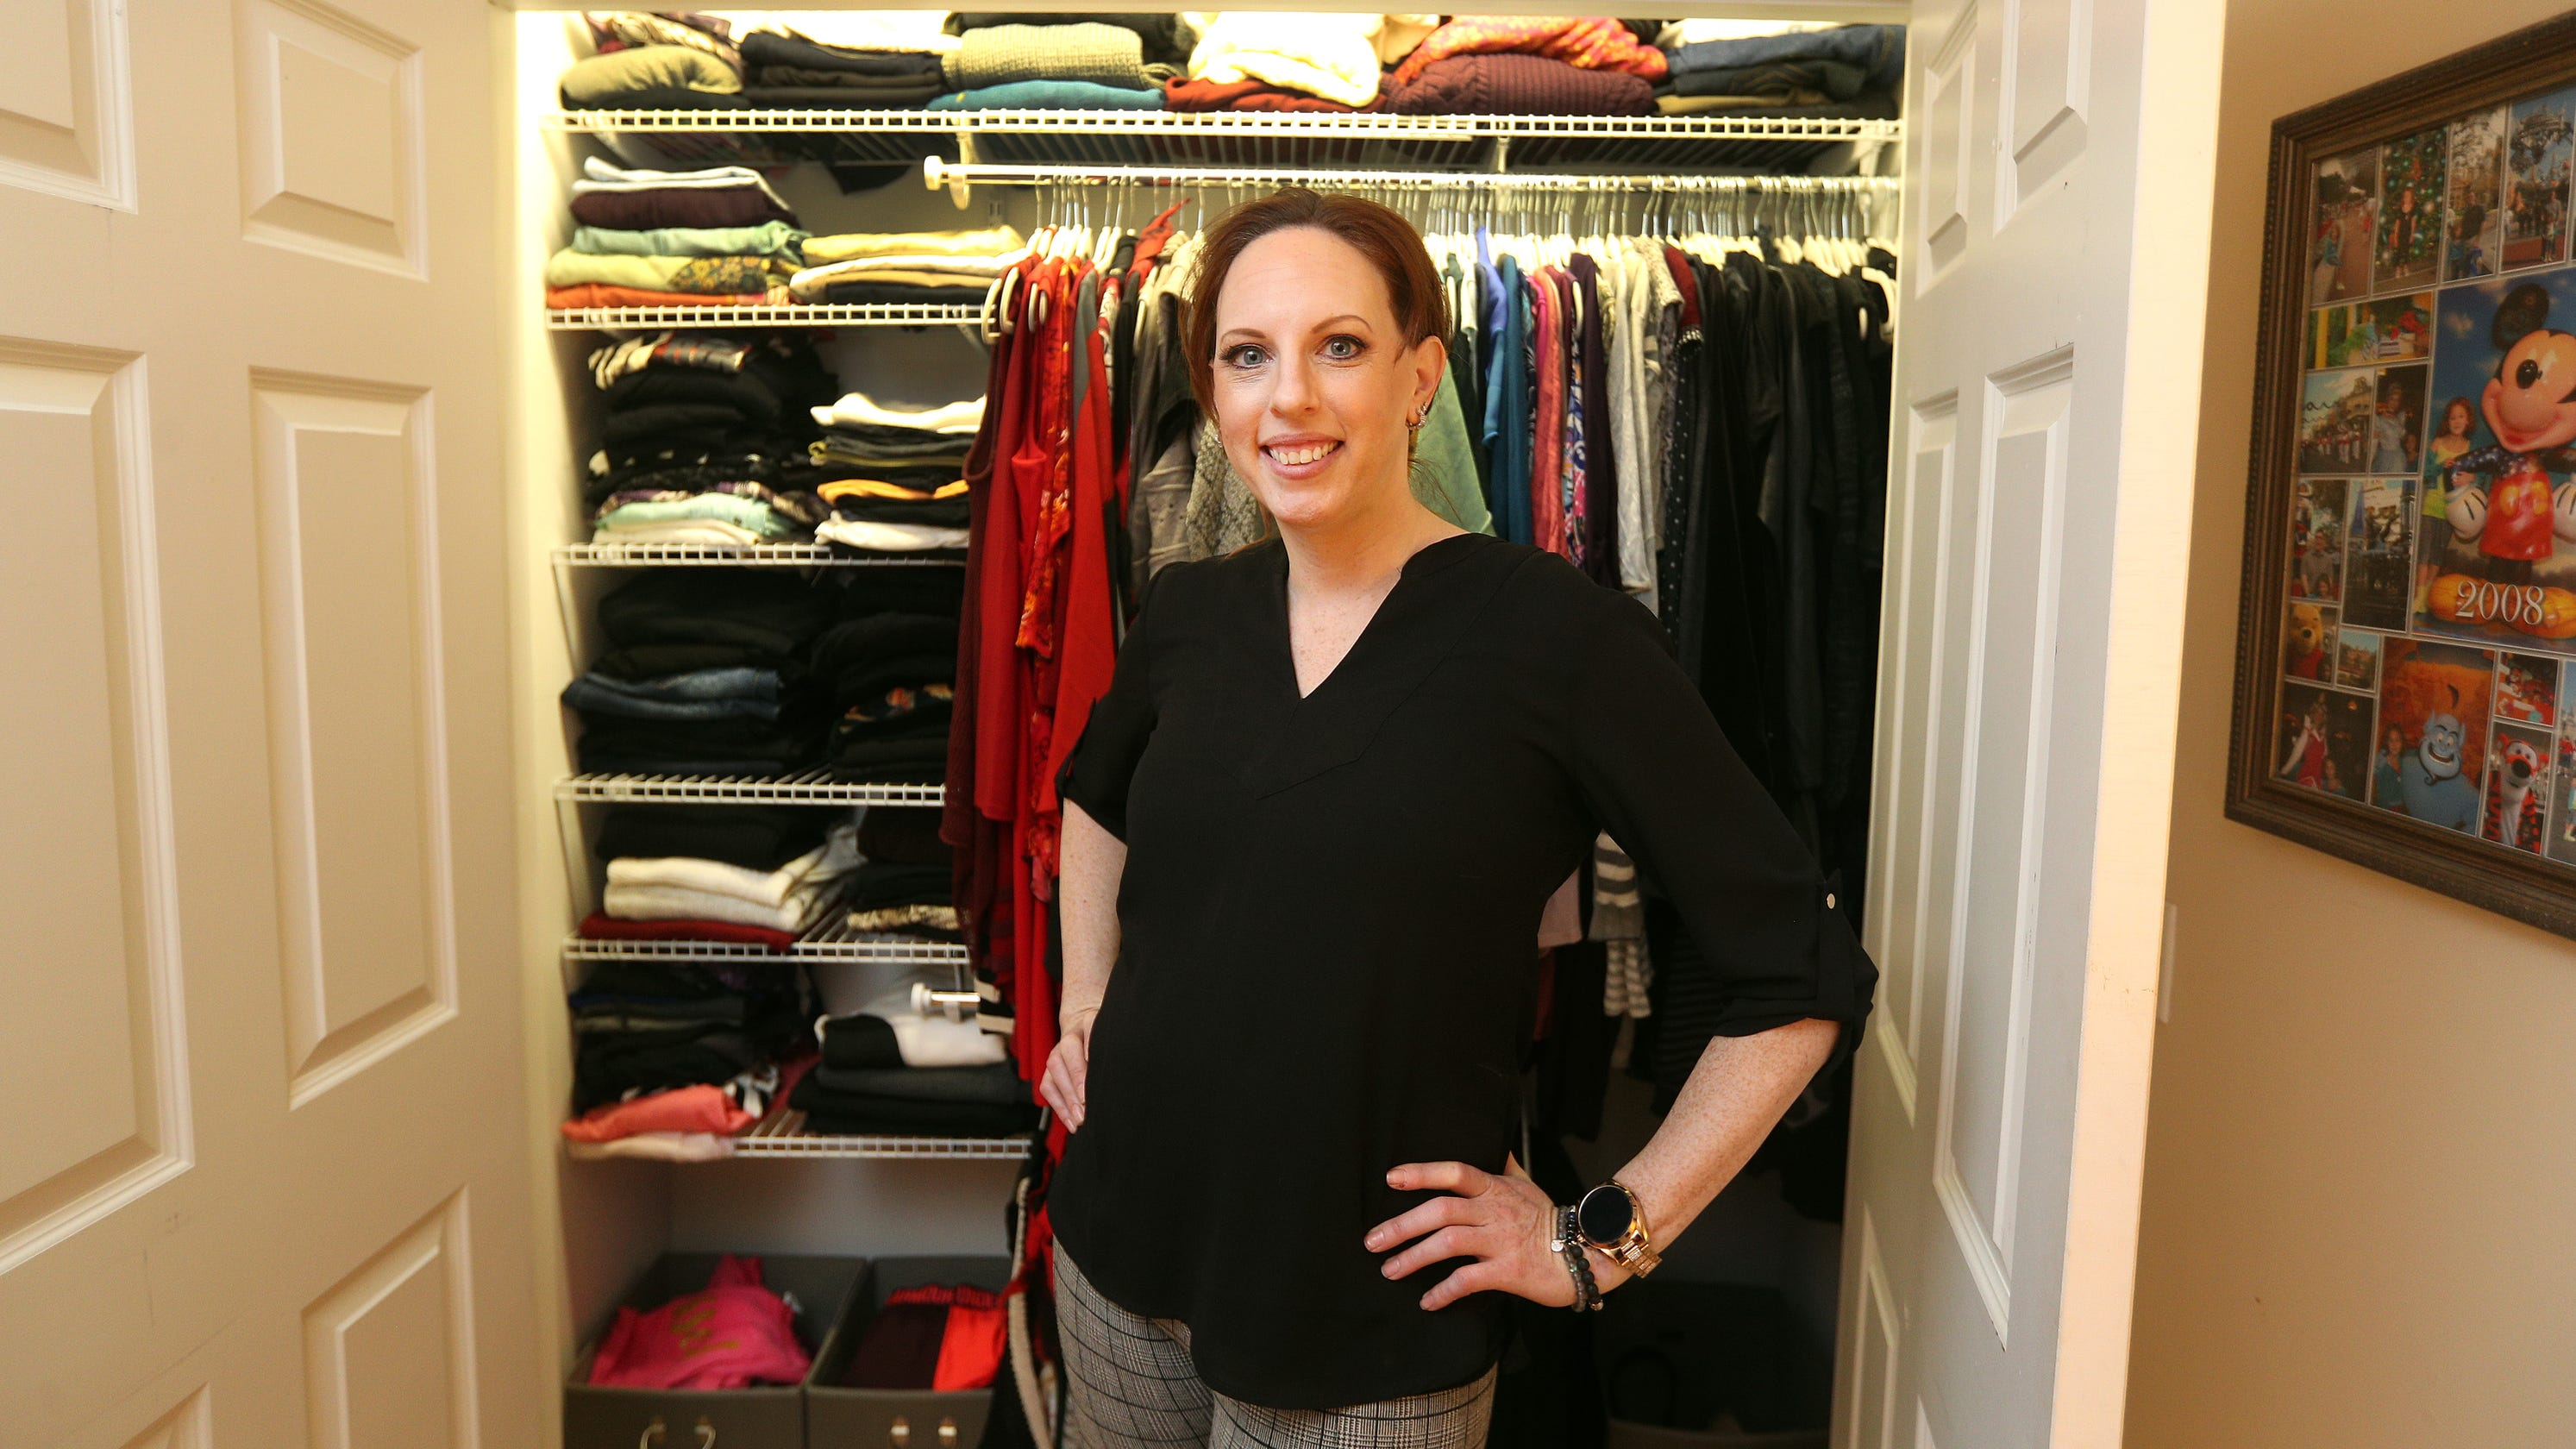 Closet Organizing For Spring With Rochester S Version Of Marie Kondo